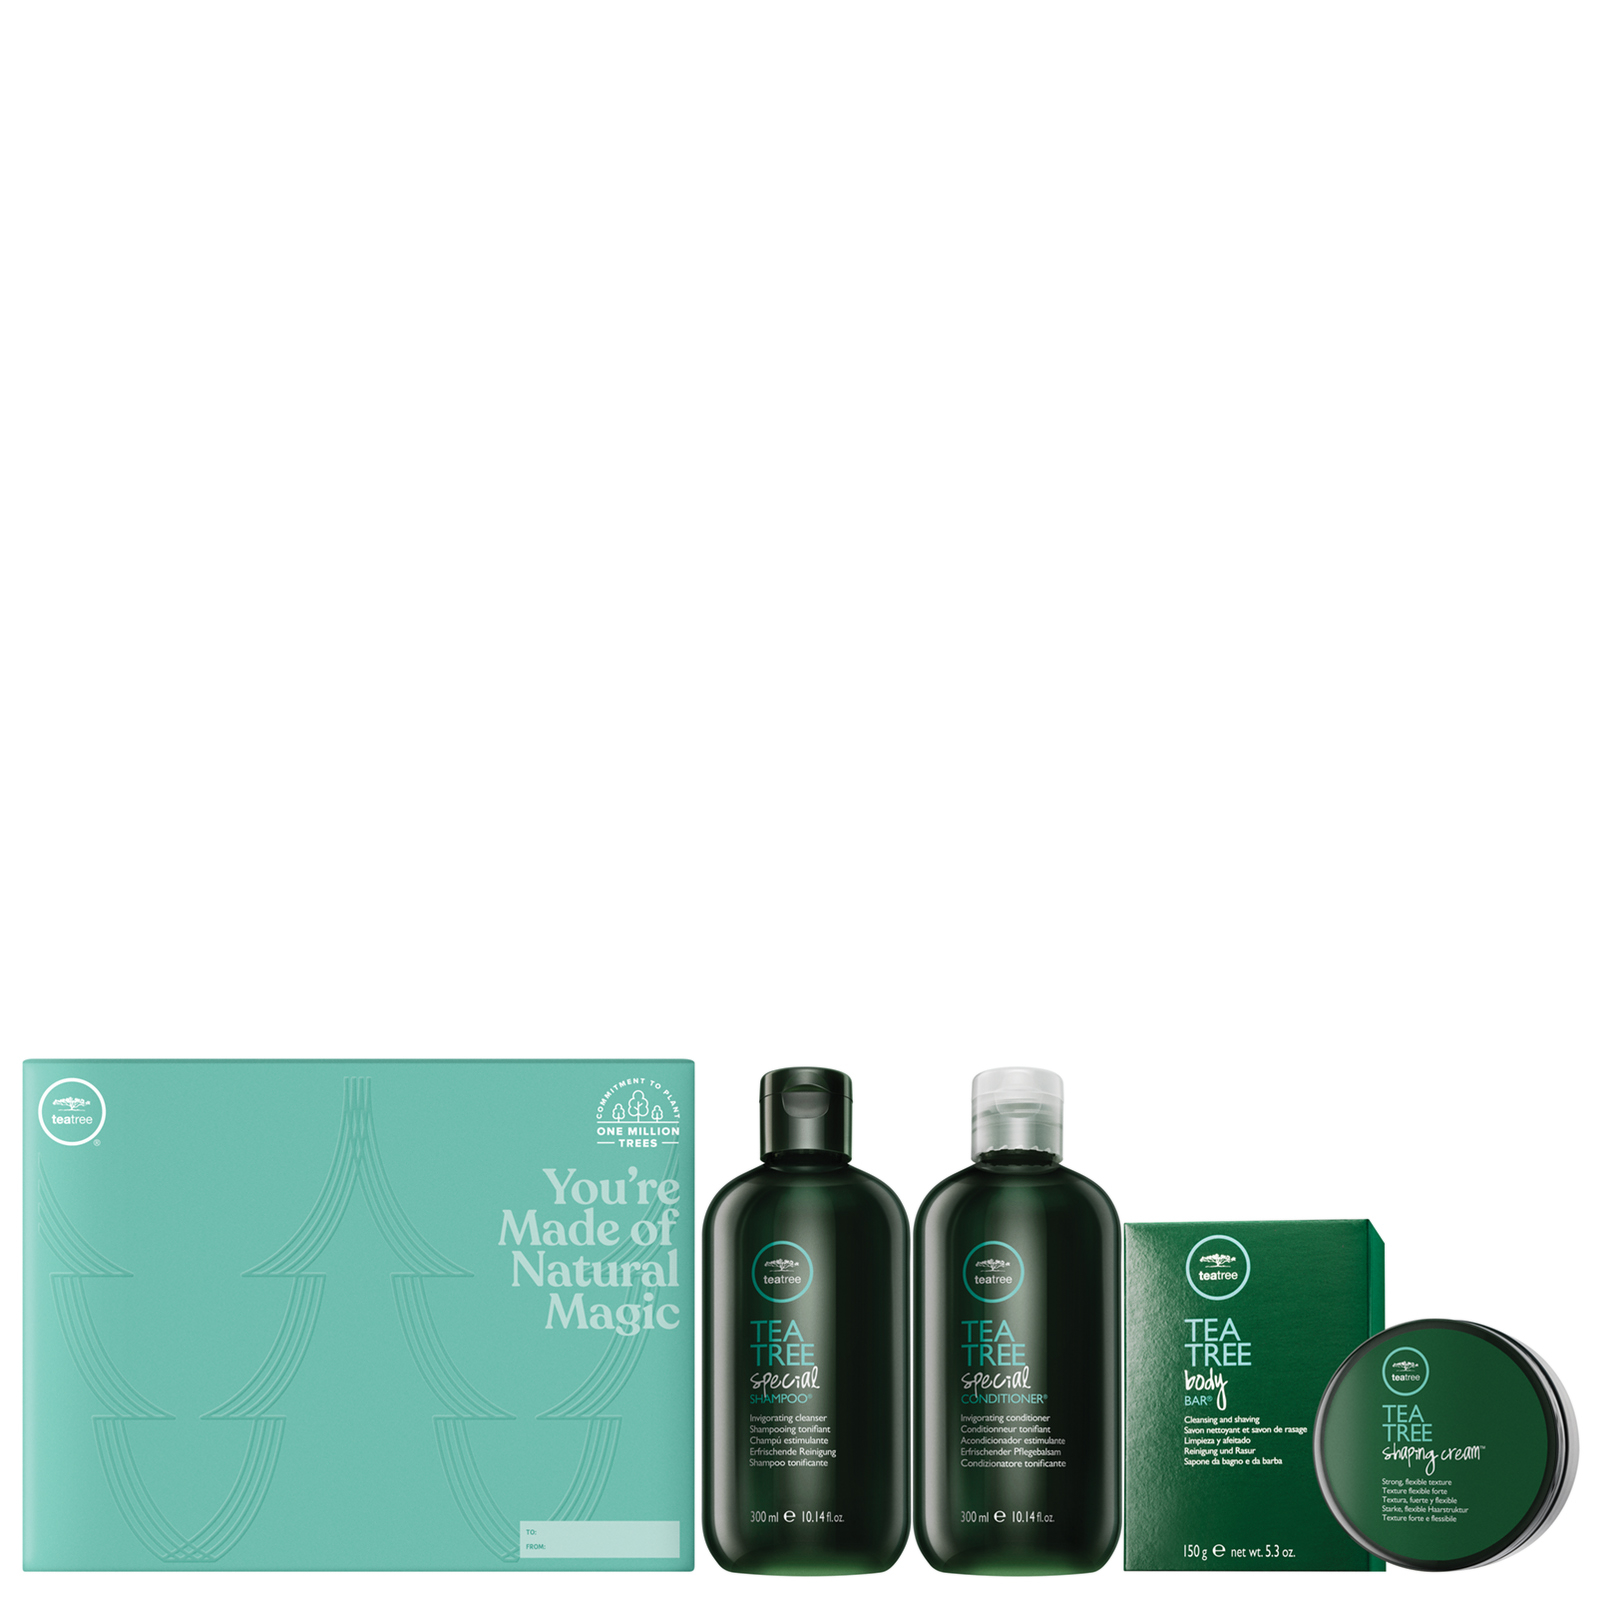 Paul Mitchell Gifts & Sets Deluxe: You're Made of Natural Magic